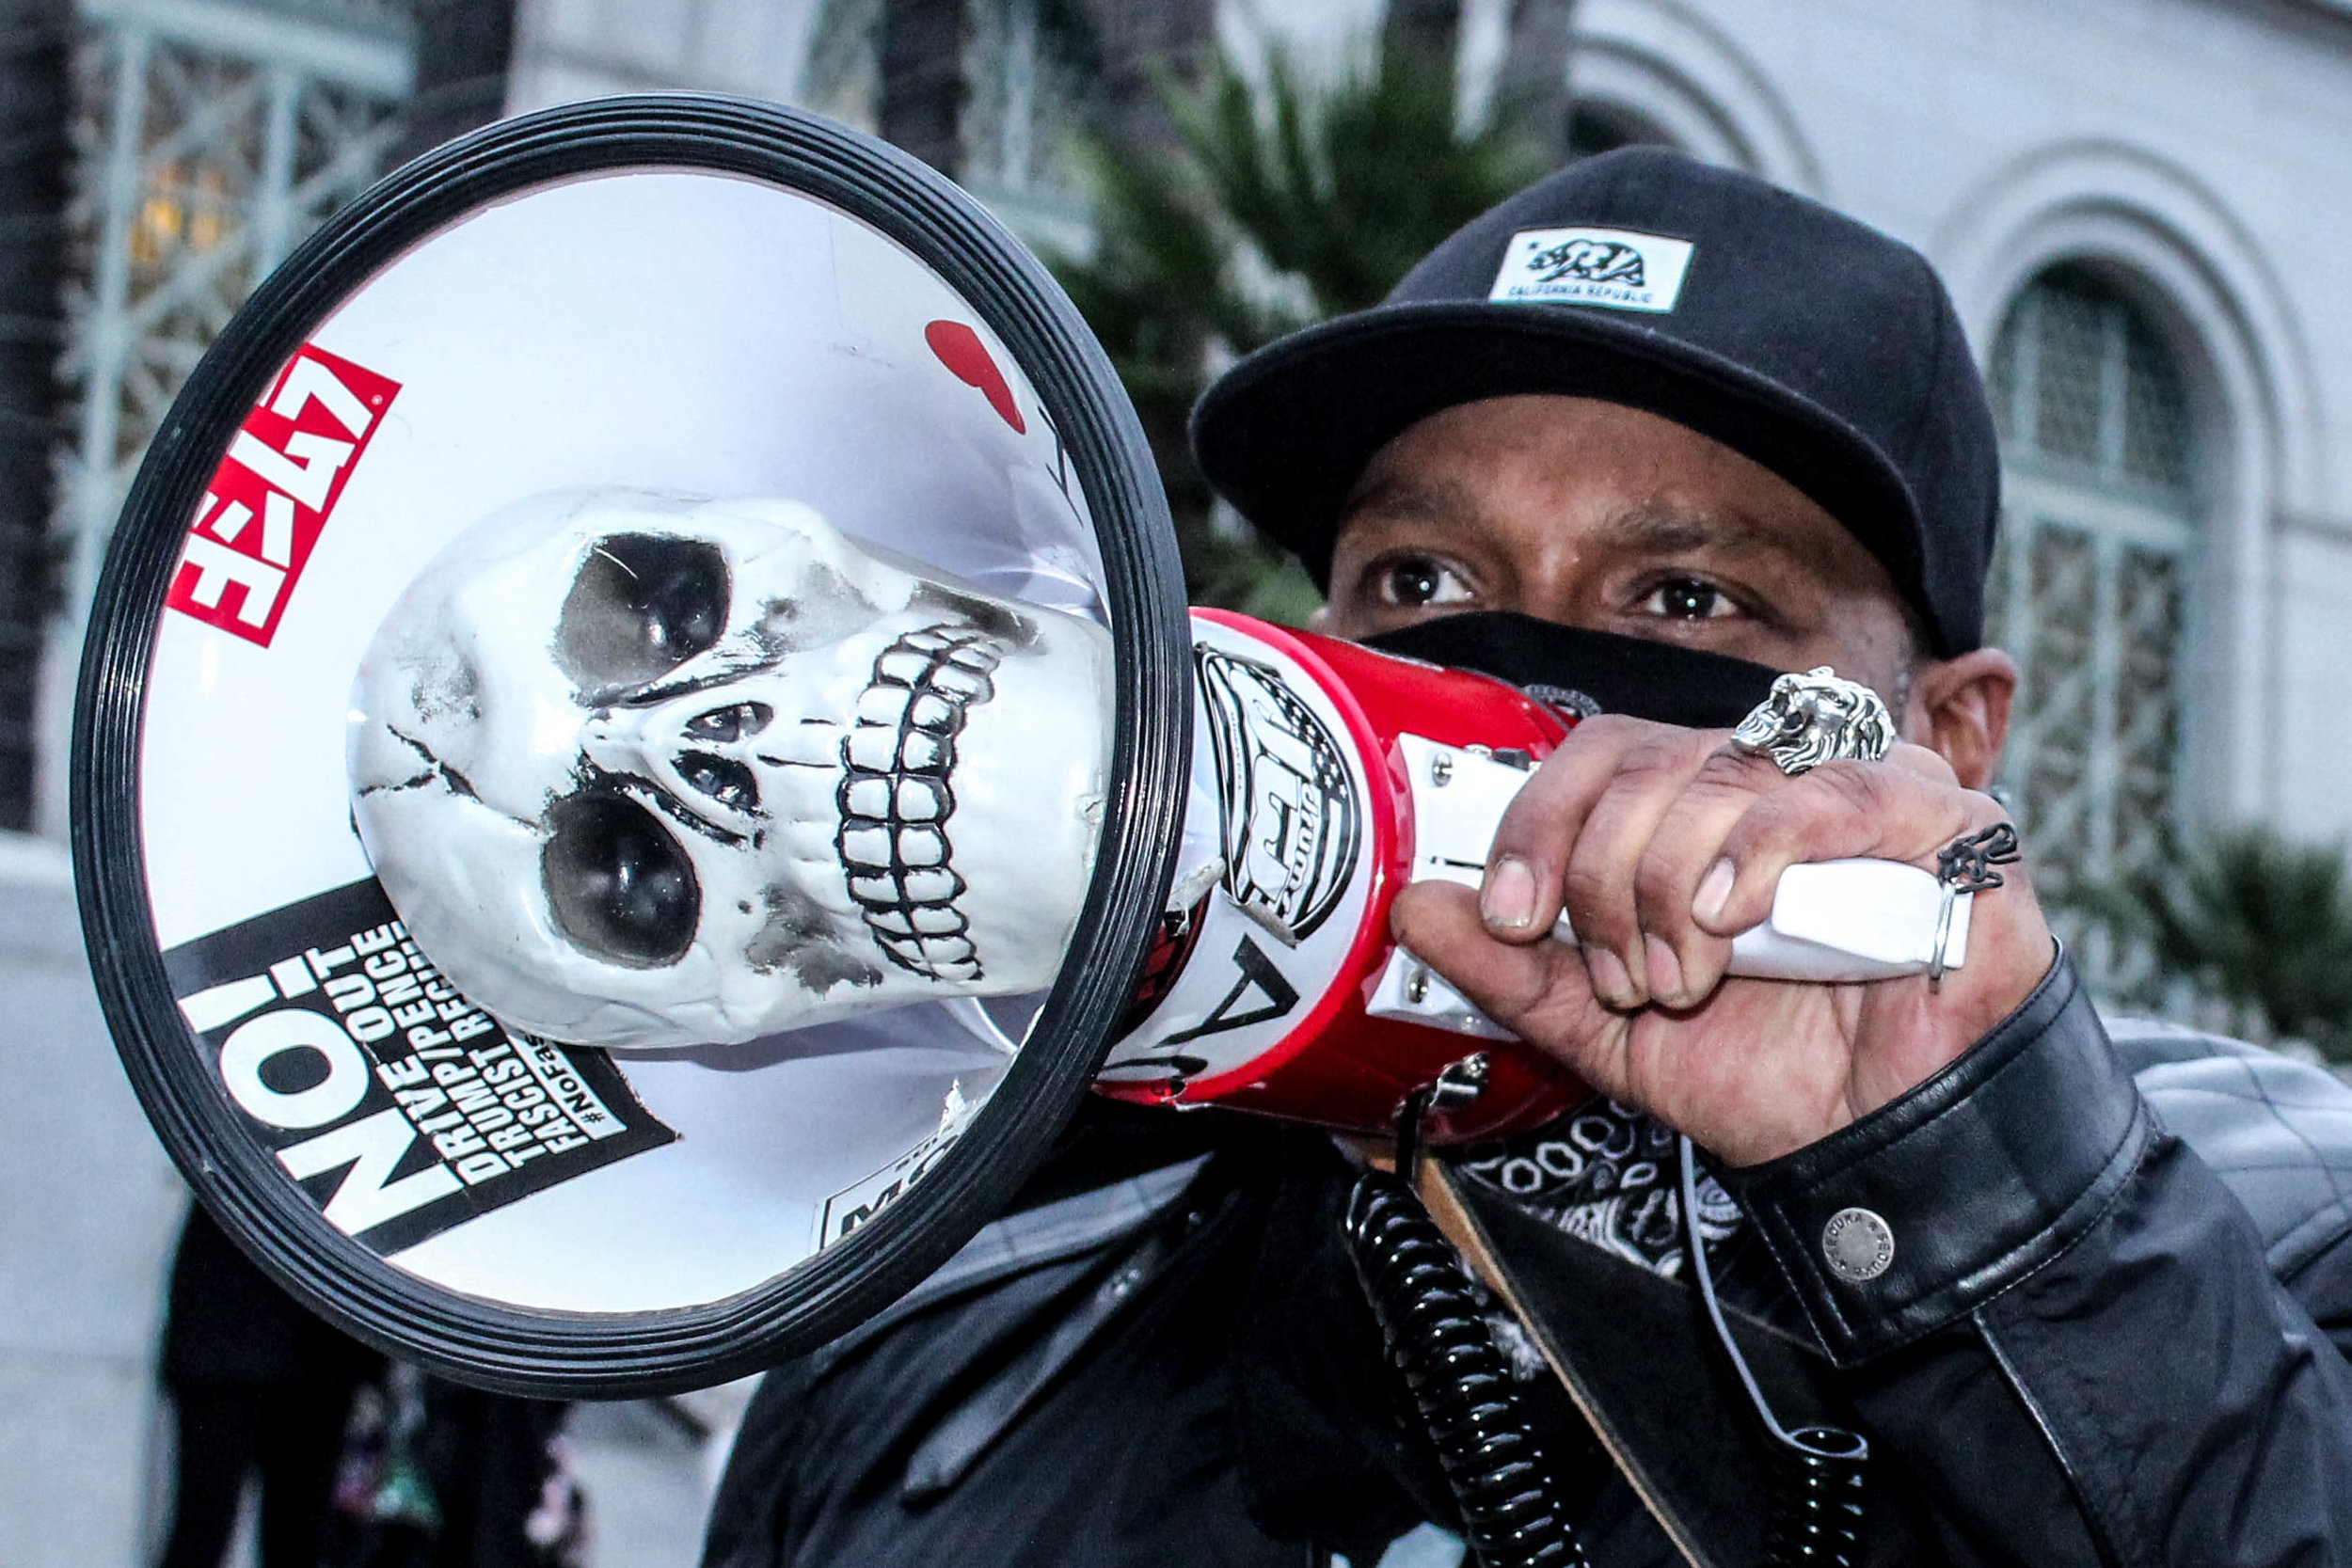 A protestor who wished to stay anonymous shows support for workers' rights by leading like-minded individuals at the May Day Protest in downtown Los Angeles on May 1, 2018 (Daniel Farr/Corsair Photo).